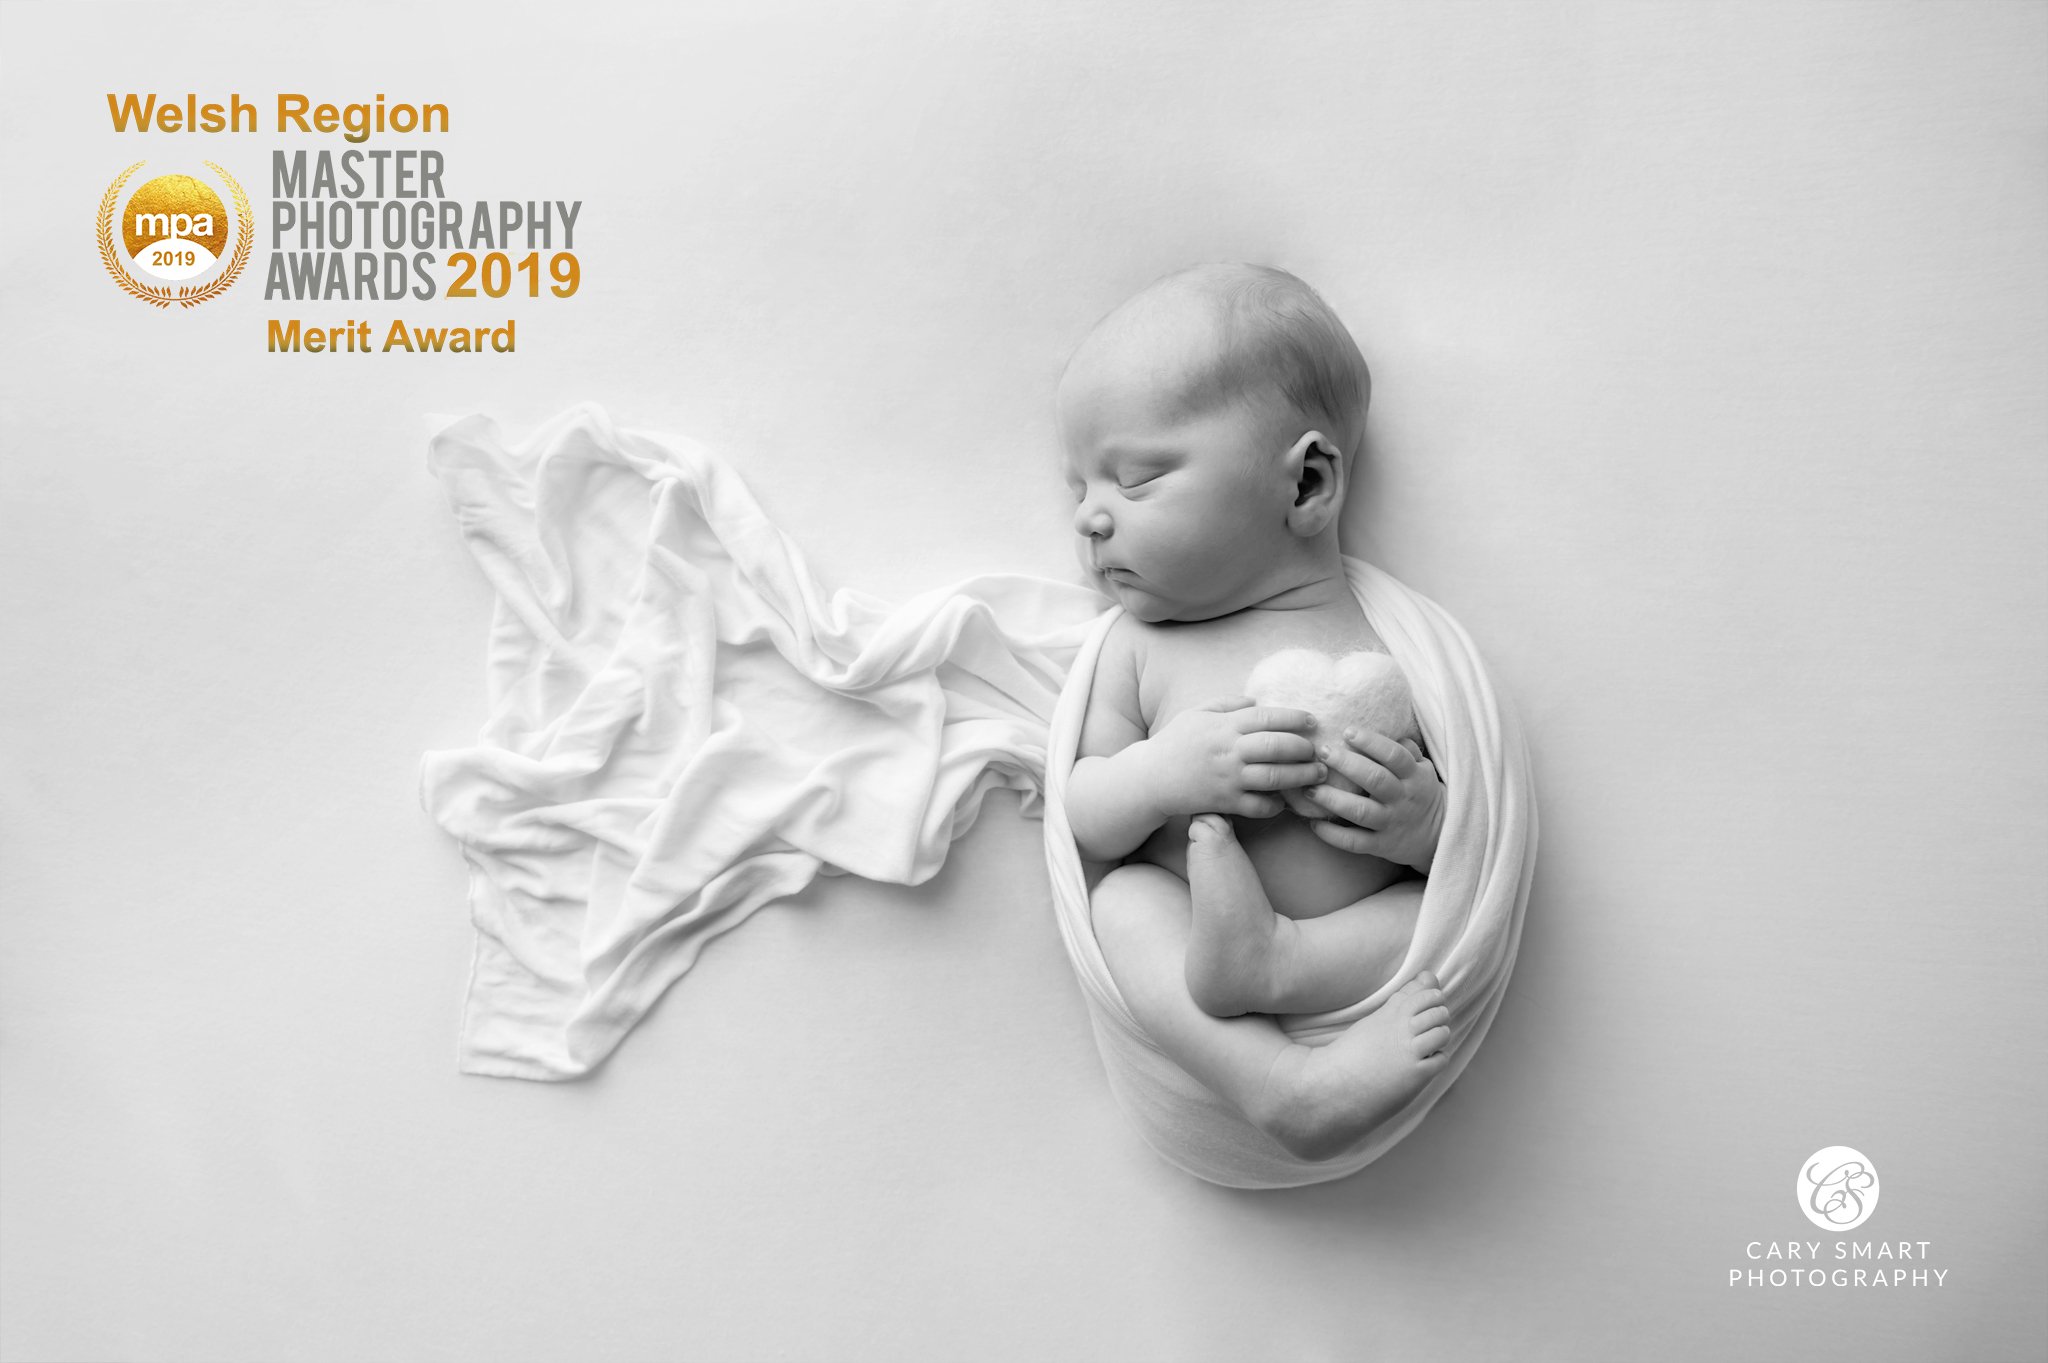 Merit Award in Category Newborn Portrait